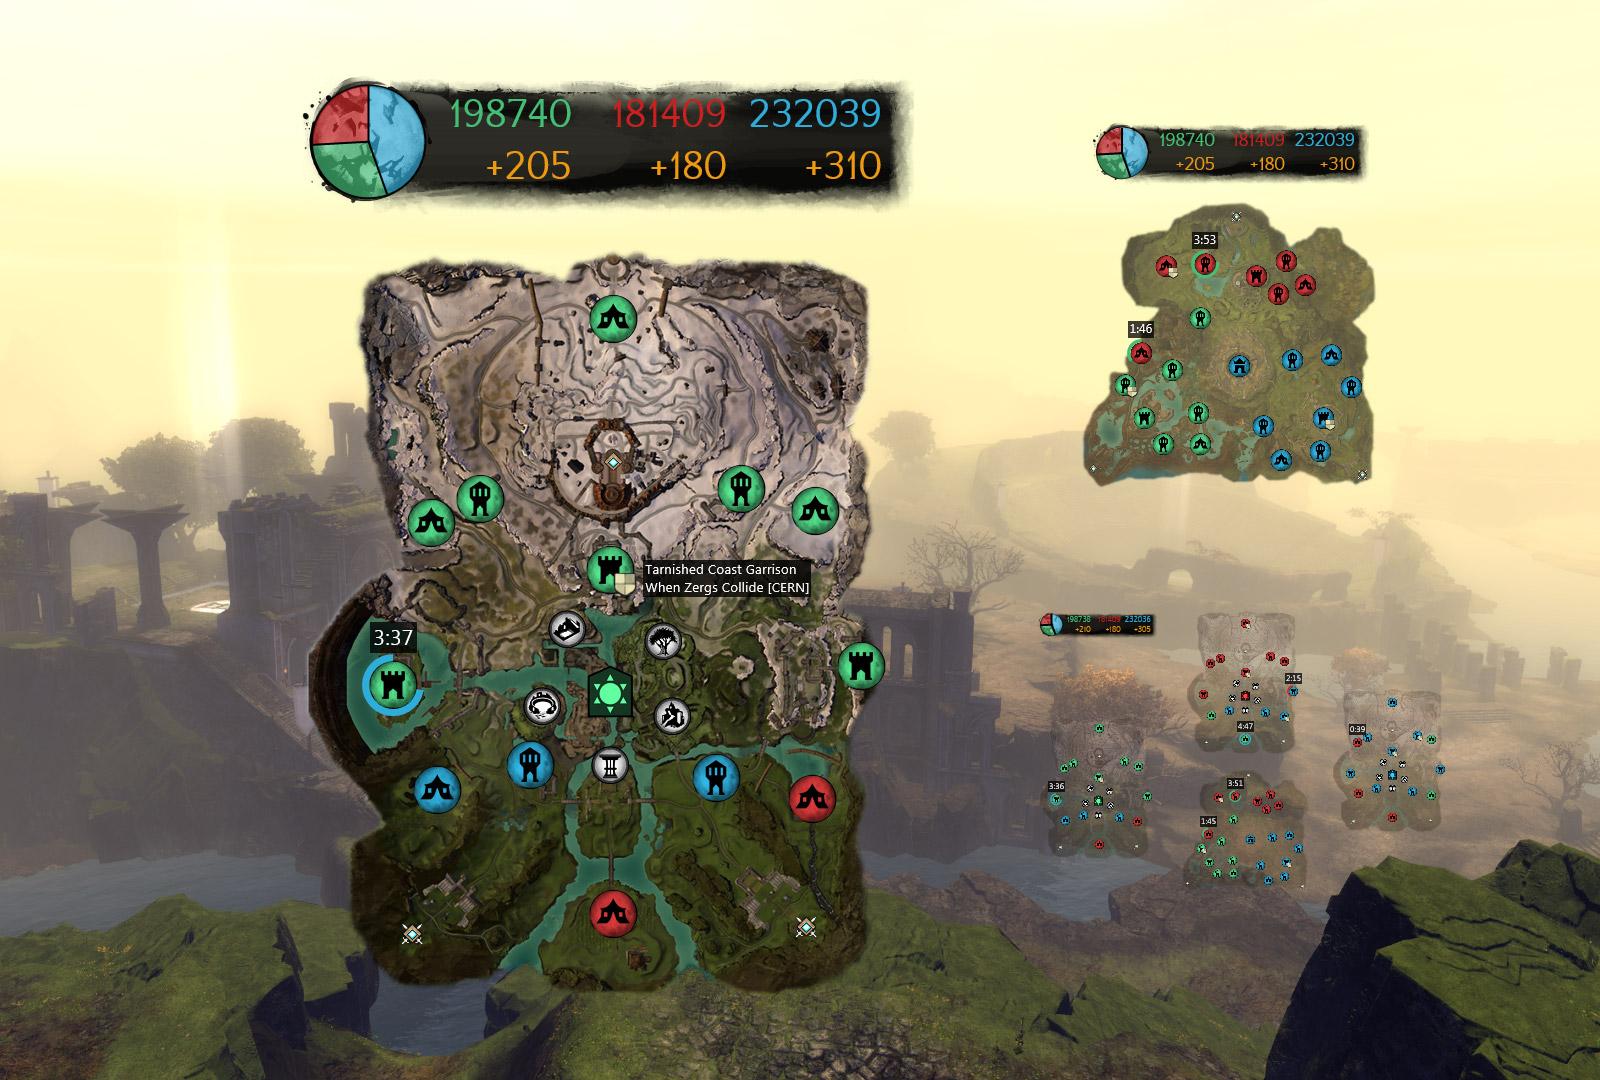 Guild wars 2 world vs world map overlay by killall q on deviantart guild wars 2 world vs world map overlay by killall q gumiabroncs Image collections